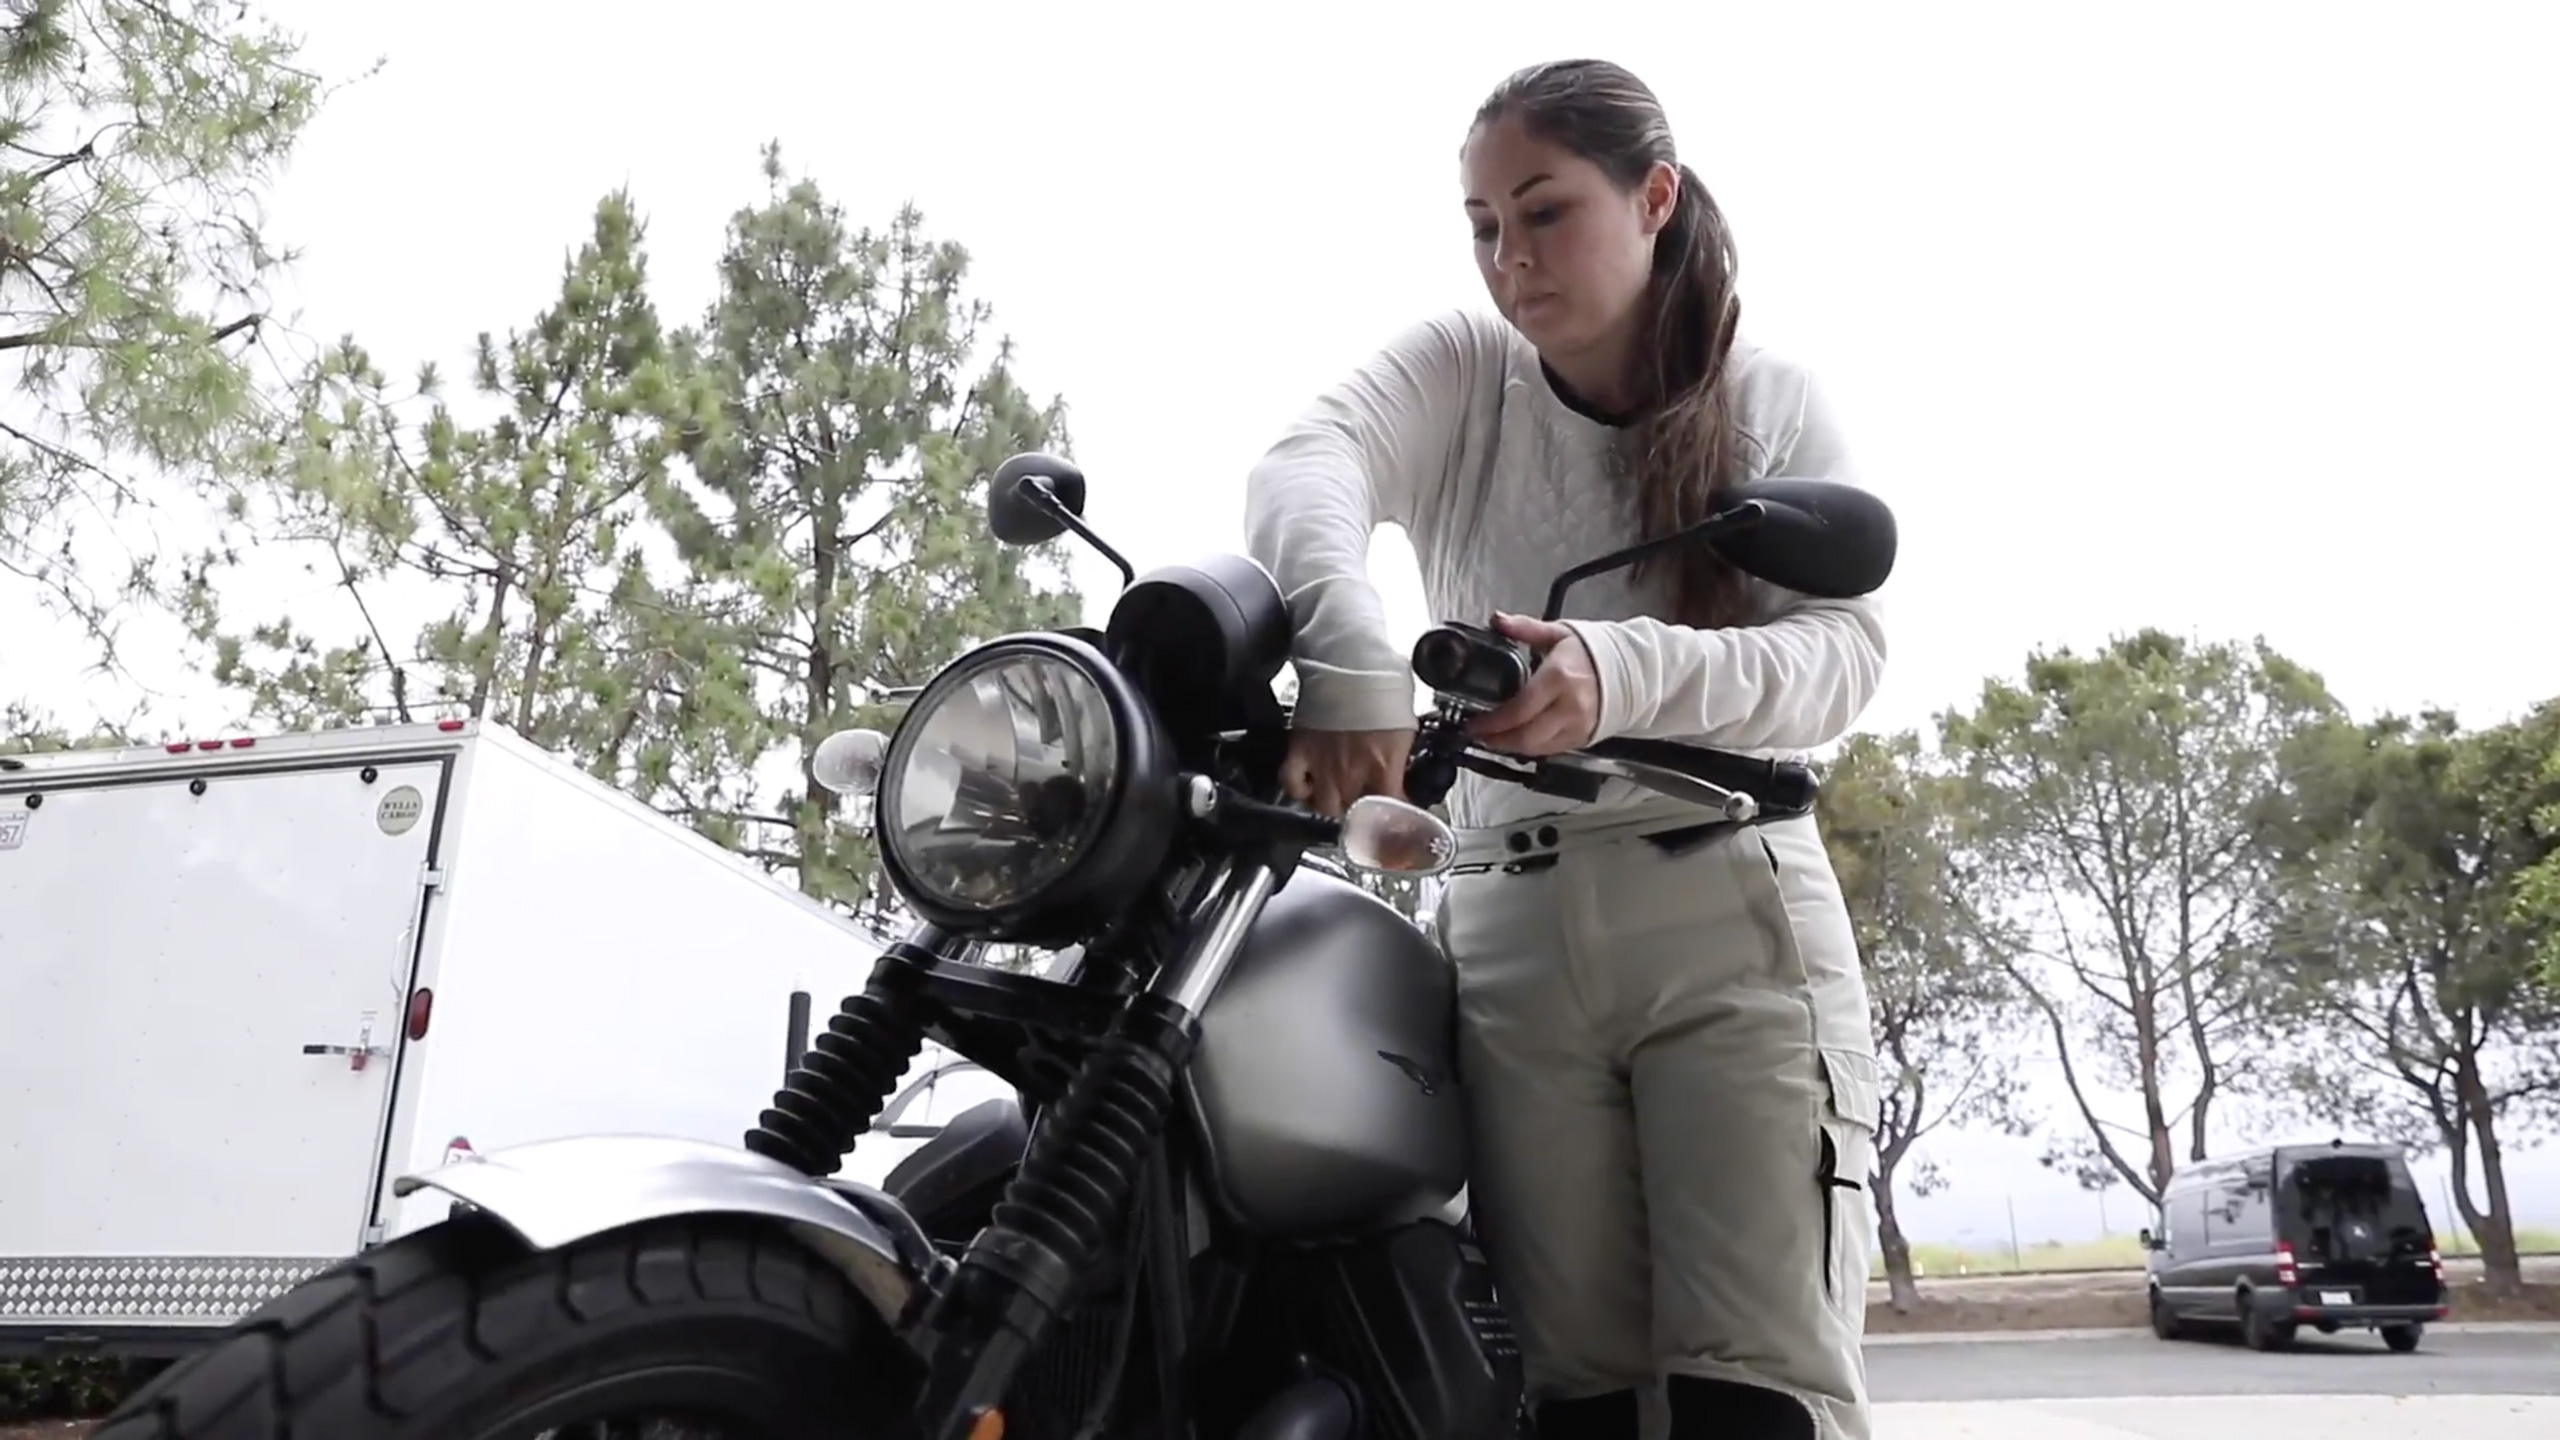 Cait, Motorcyclists and Founder of California Moto Market